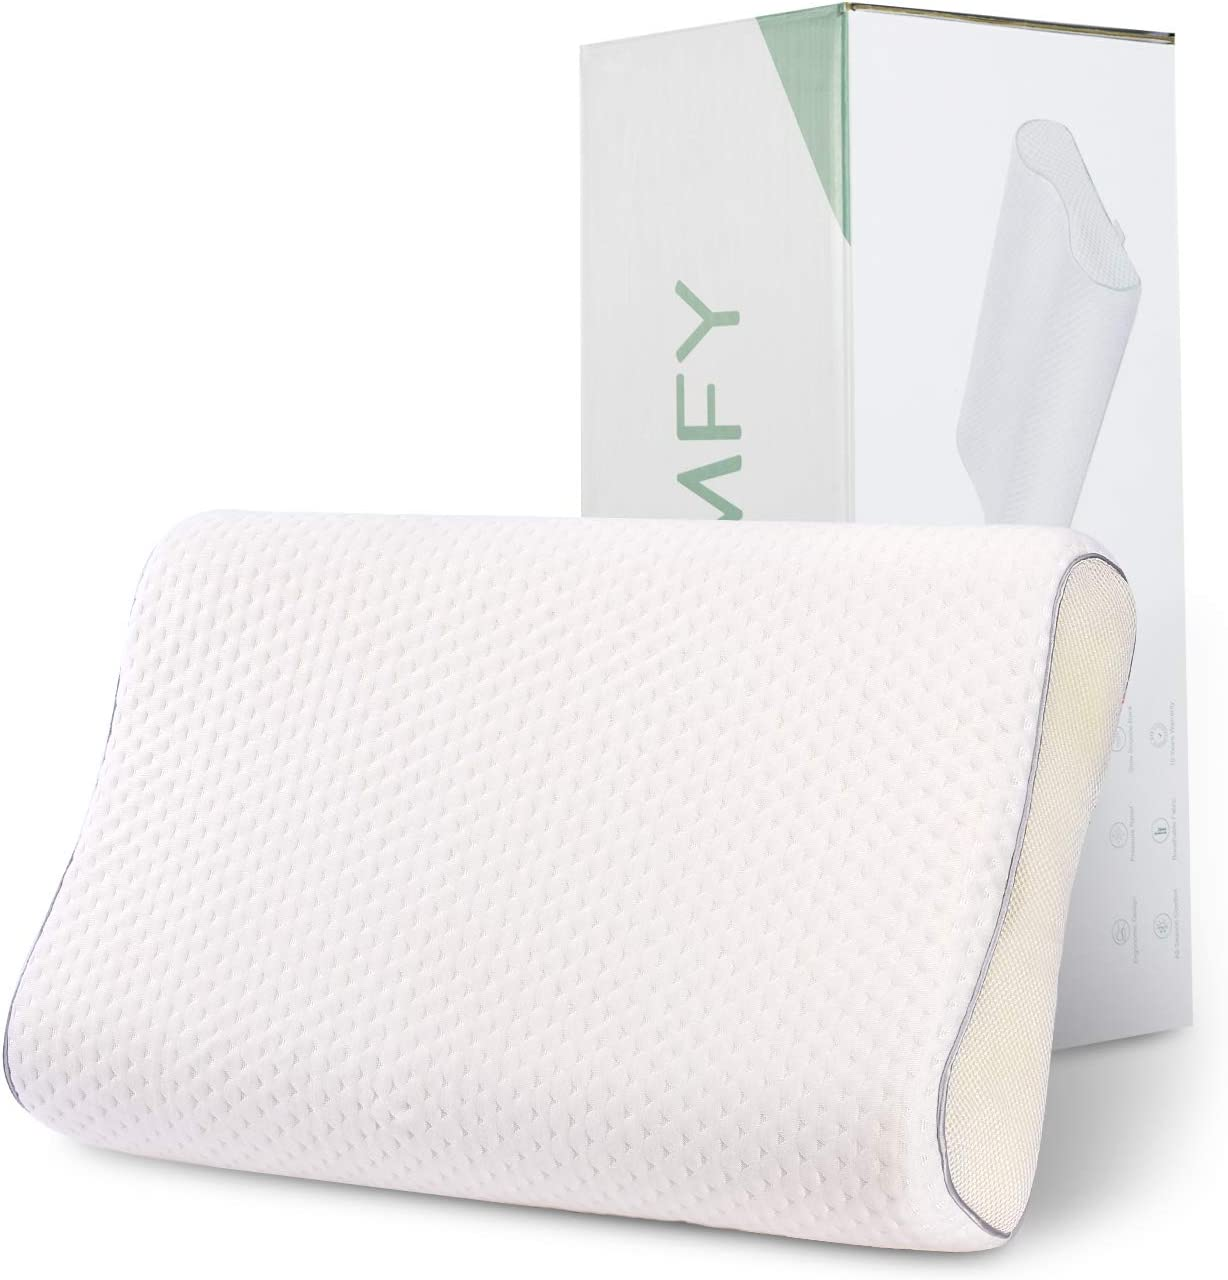 HOMFY Adjustable Memory Foam Sleeping Pillows Firm Neck Support Sandwich Pillow for Side, Back and Stomach Sleepers